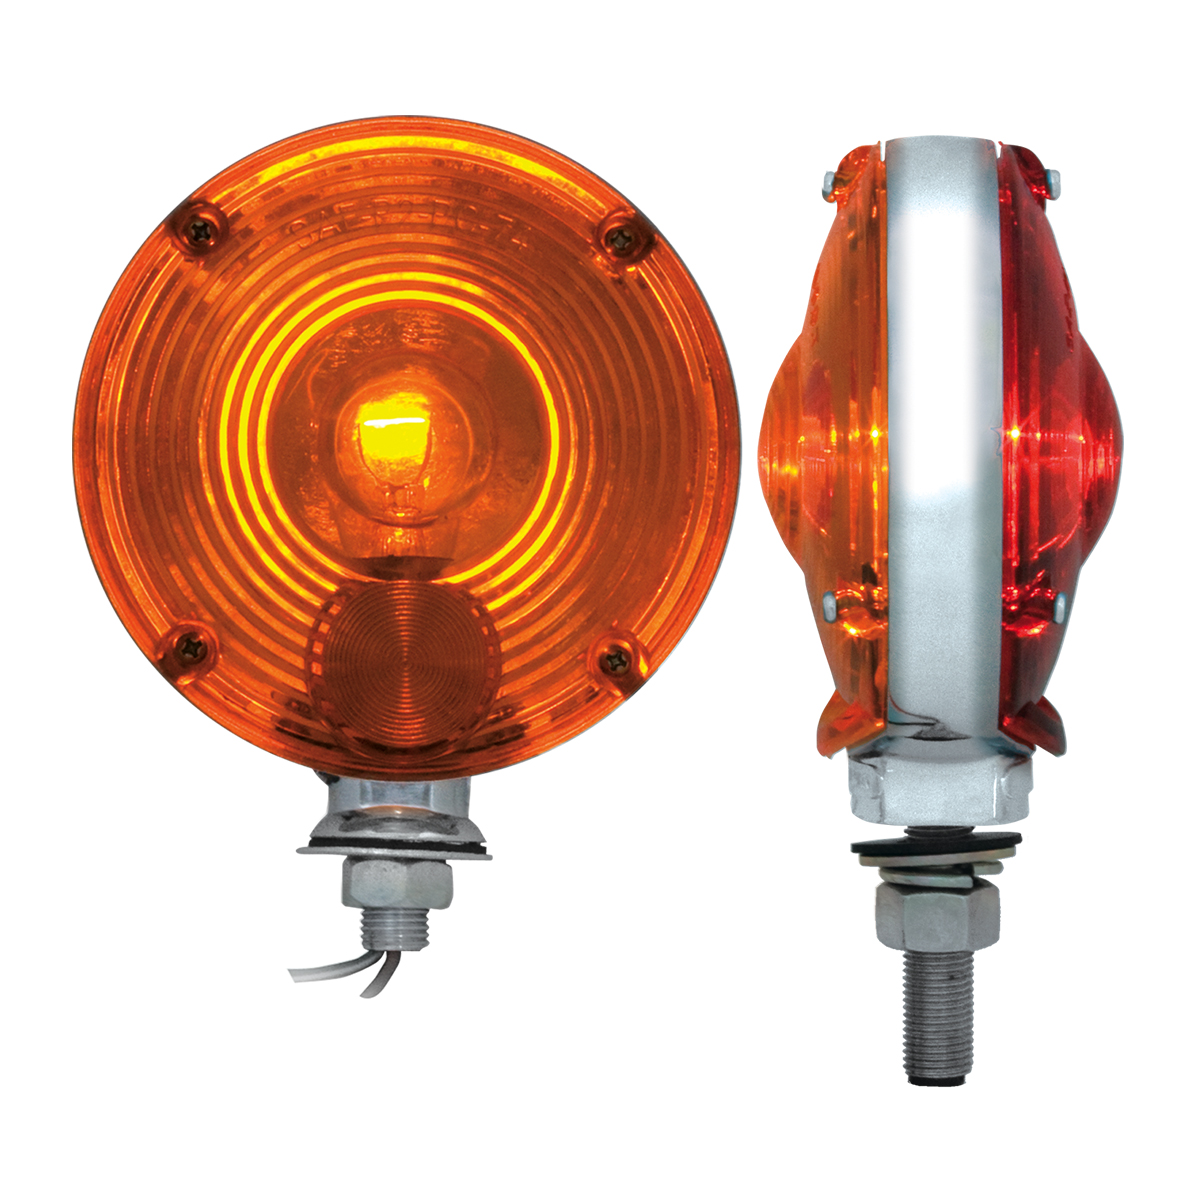 #80305 4  Double Face Pedestal Amber/Red Light - Profile View  sc 1 st  Grand General & 4